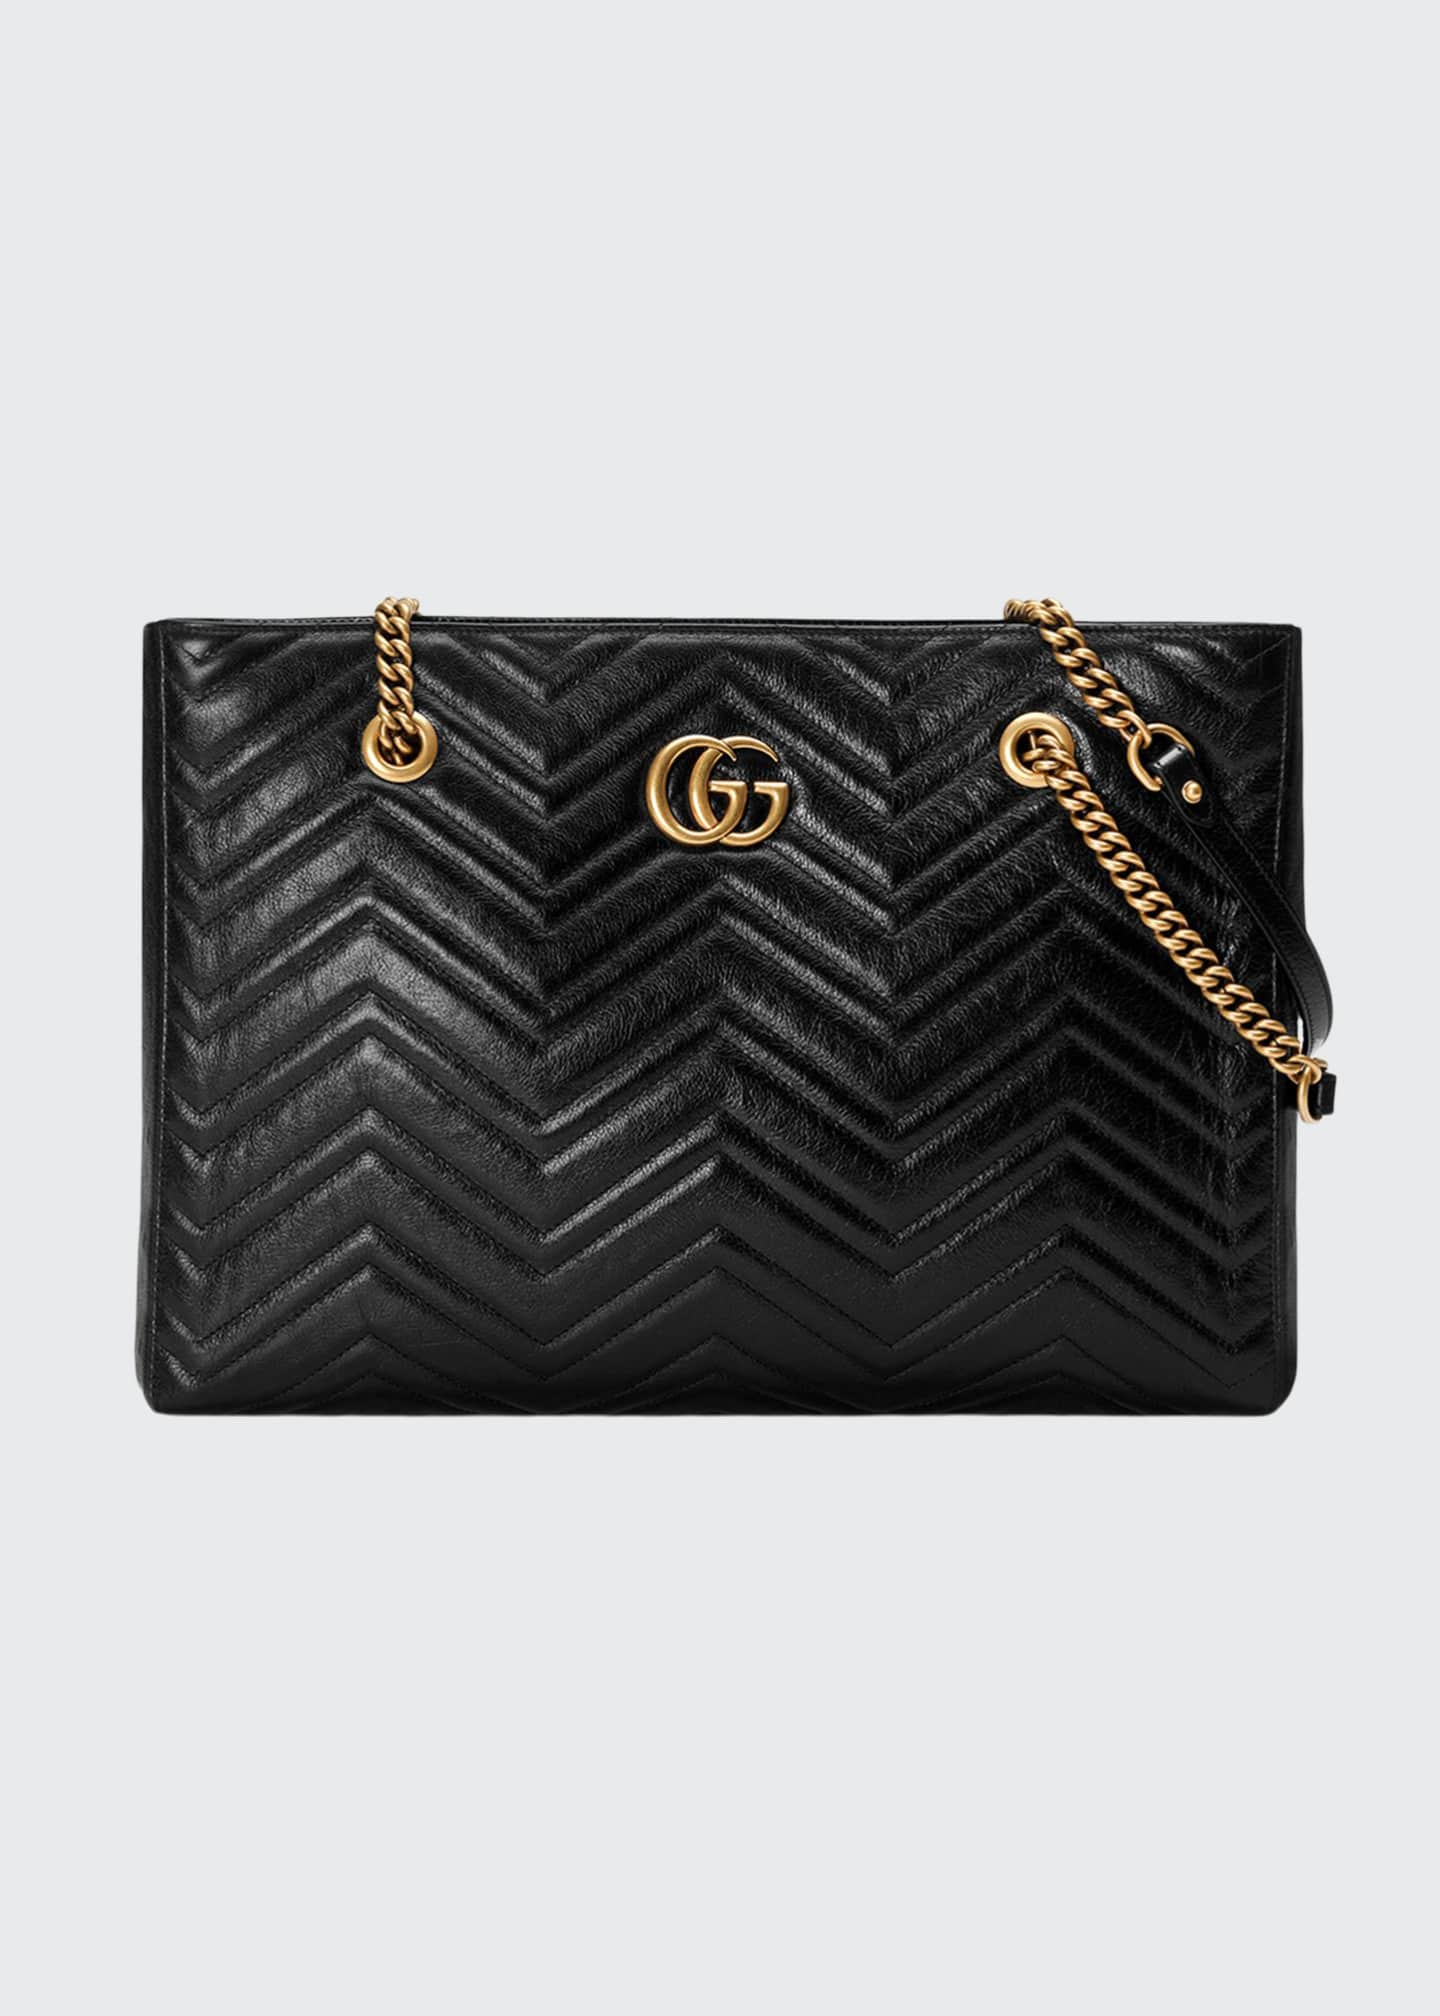 Gucci GG Marmont Medium Quilted Leather Shoulder Tote